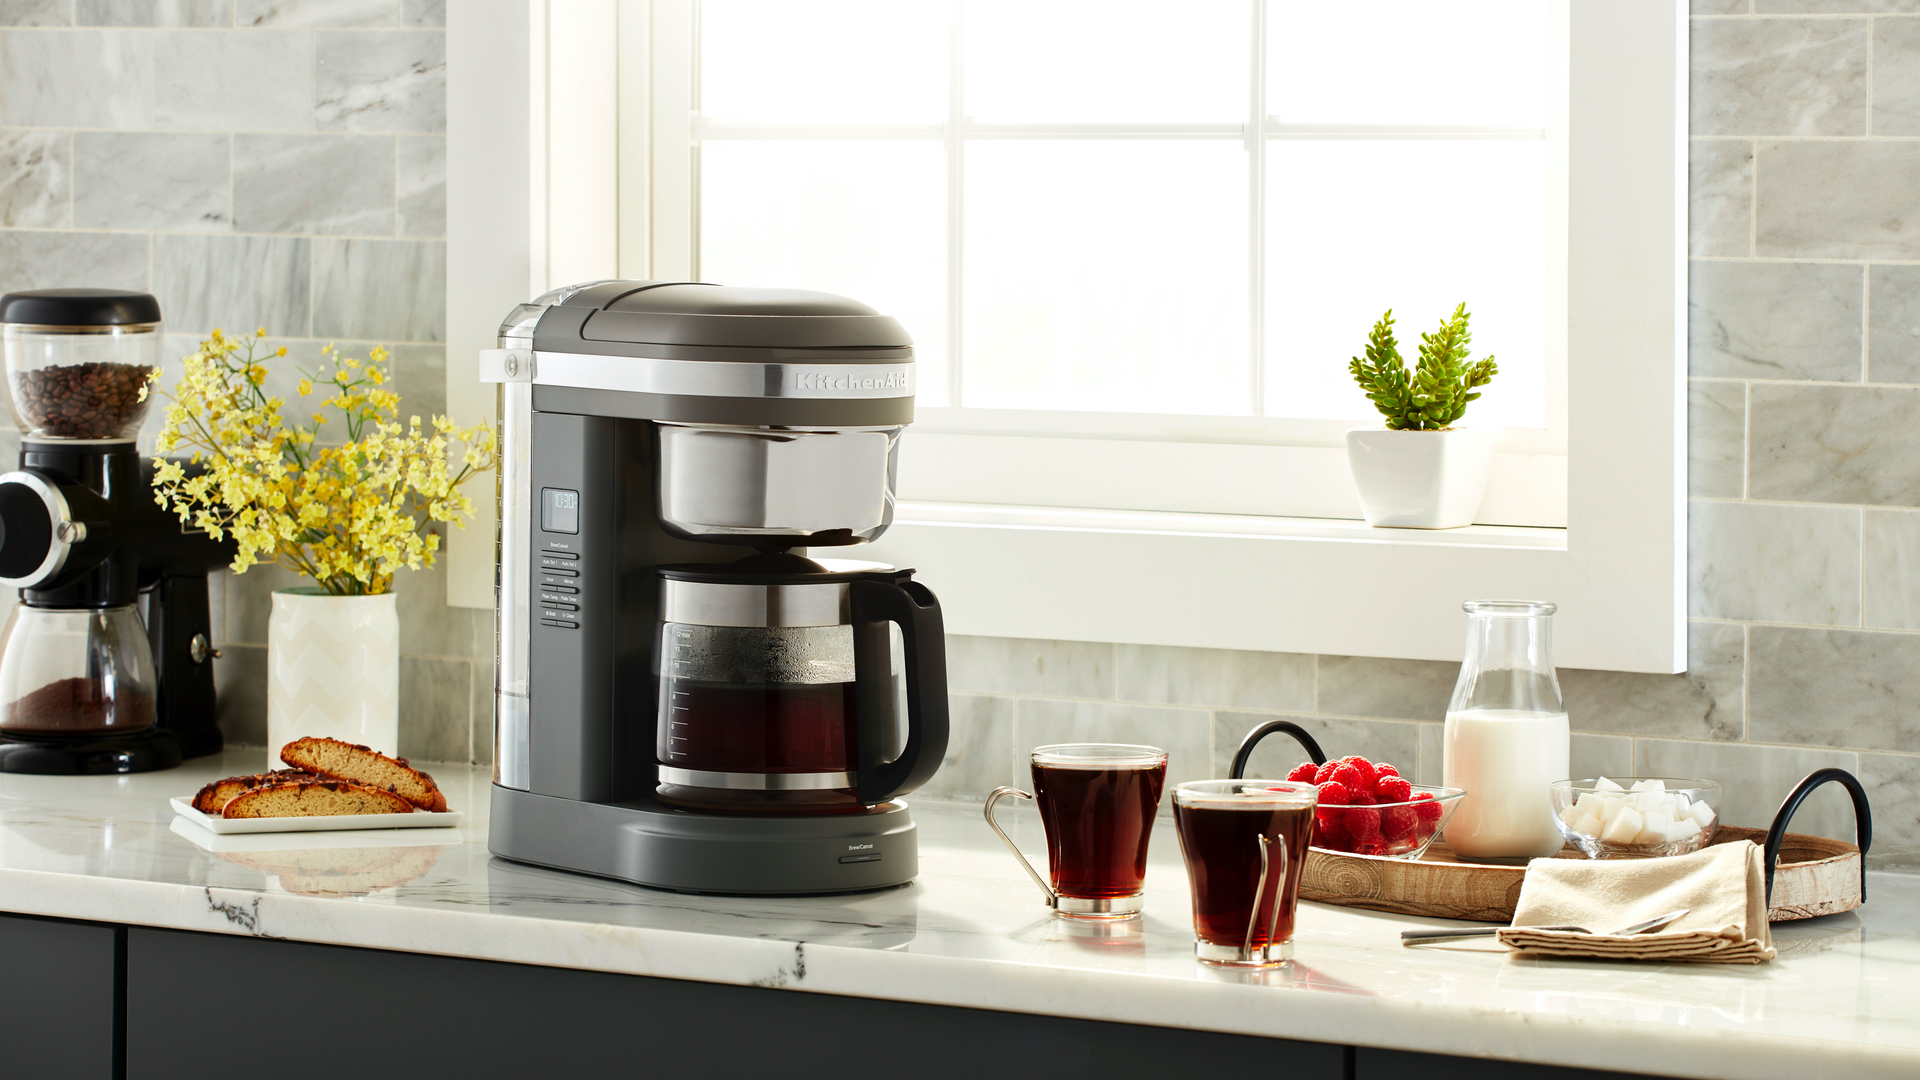 Best Pour Over Coffee Maker 2020 The